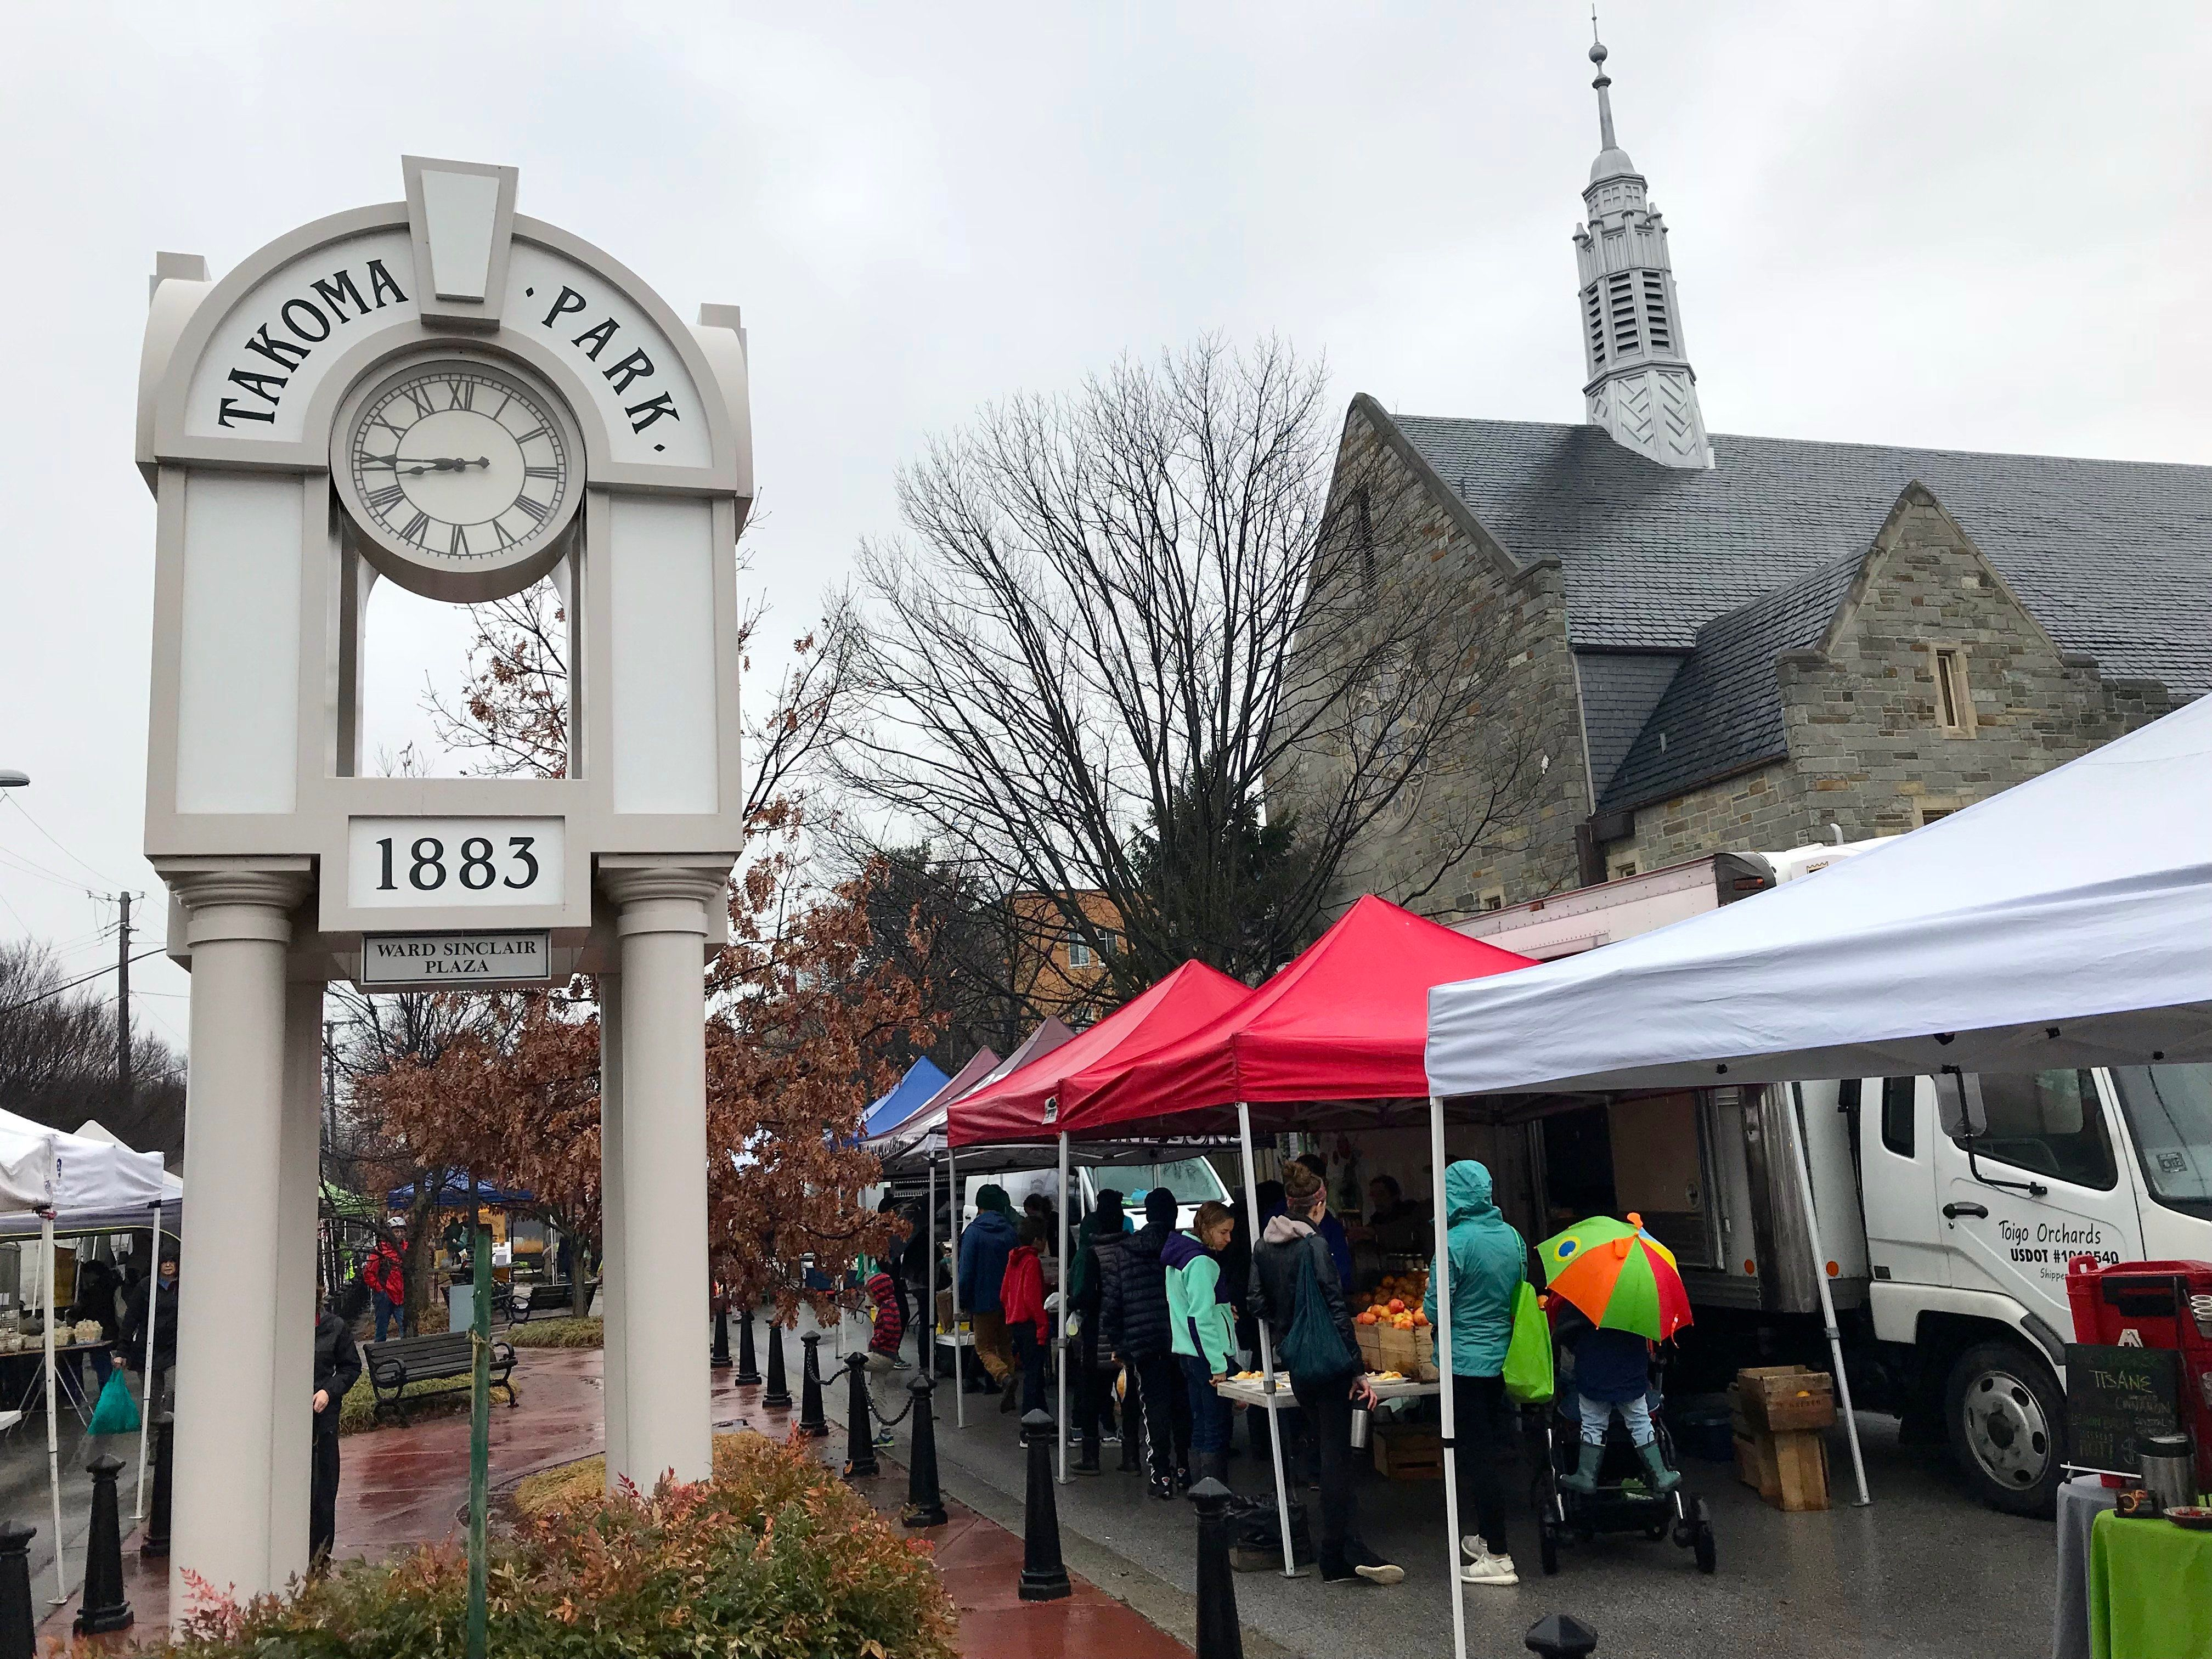 Takoma Park residents check out mushrooms, locally made cheese and 10 varieties of apples at the weekly farmer's market.